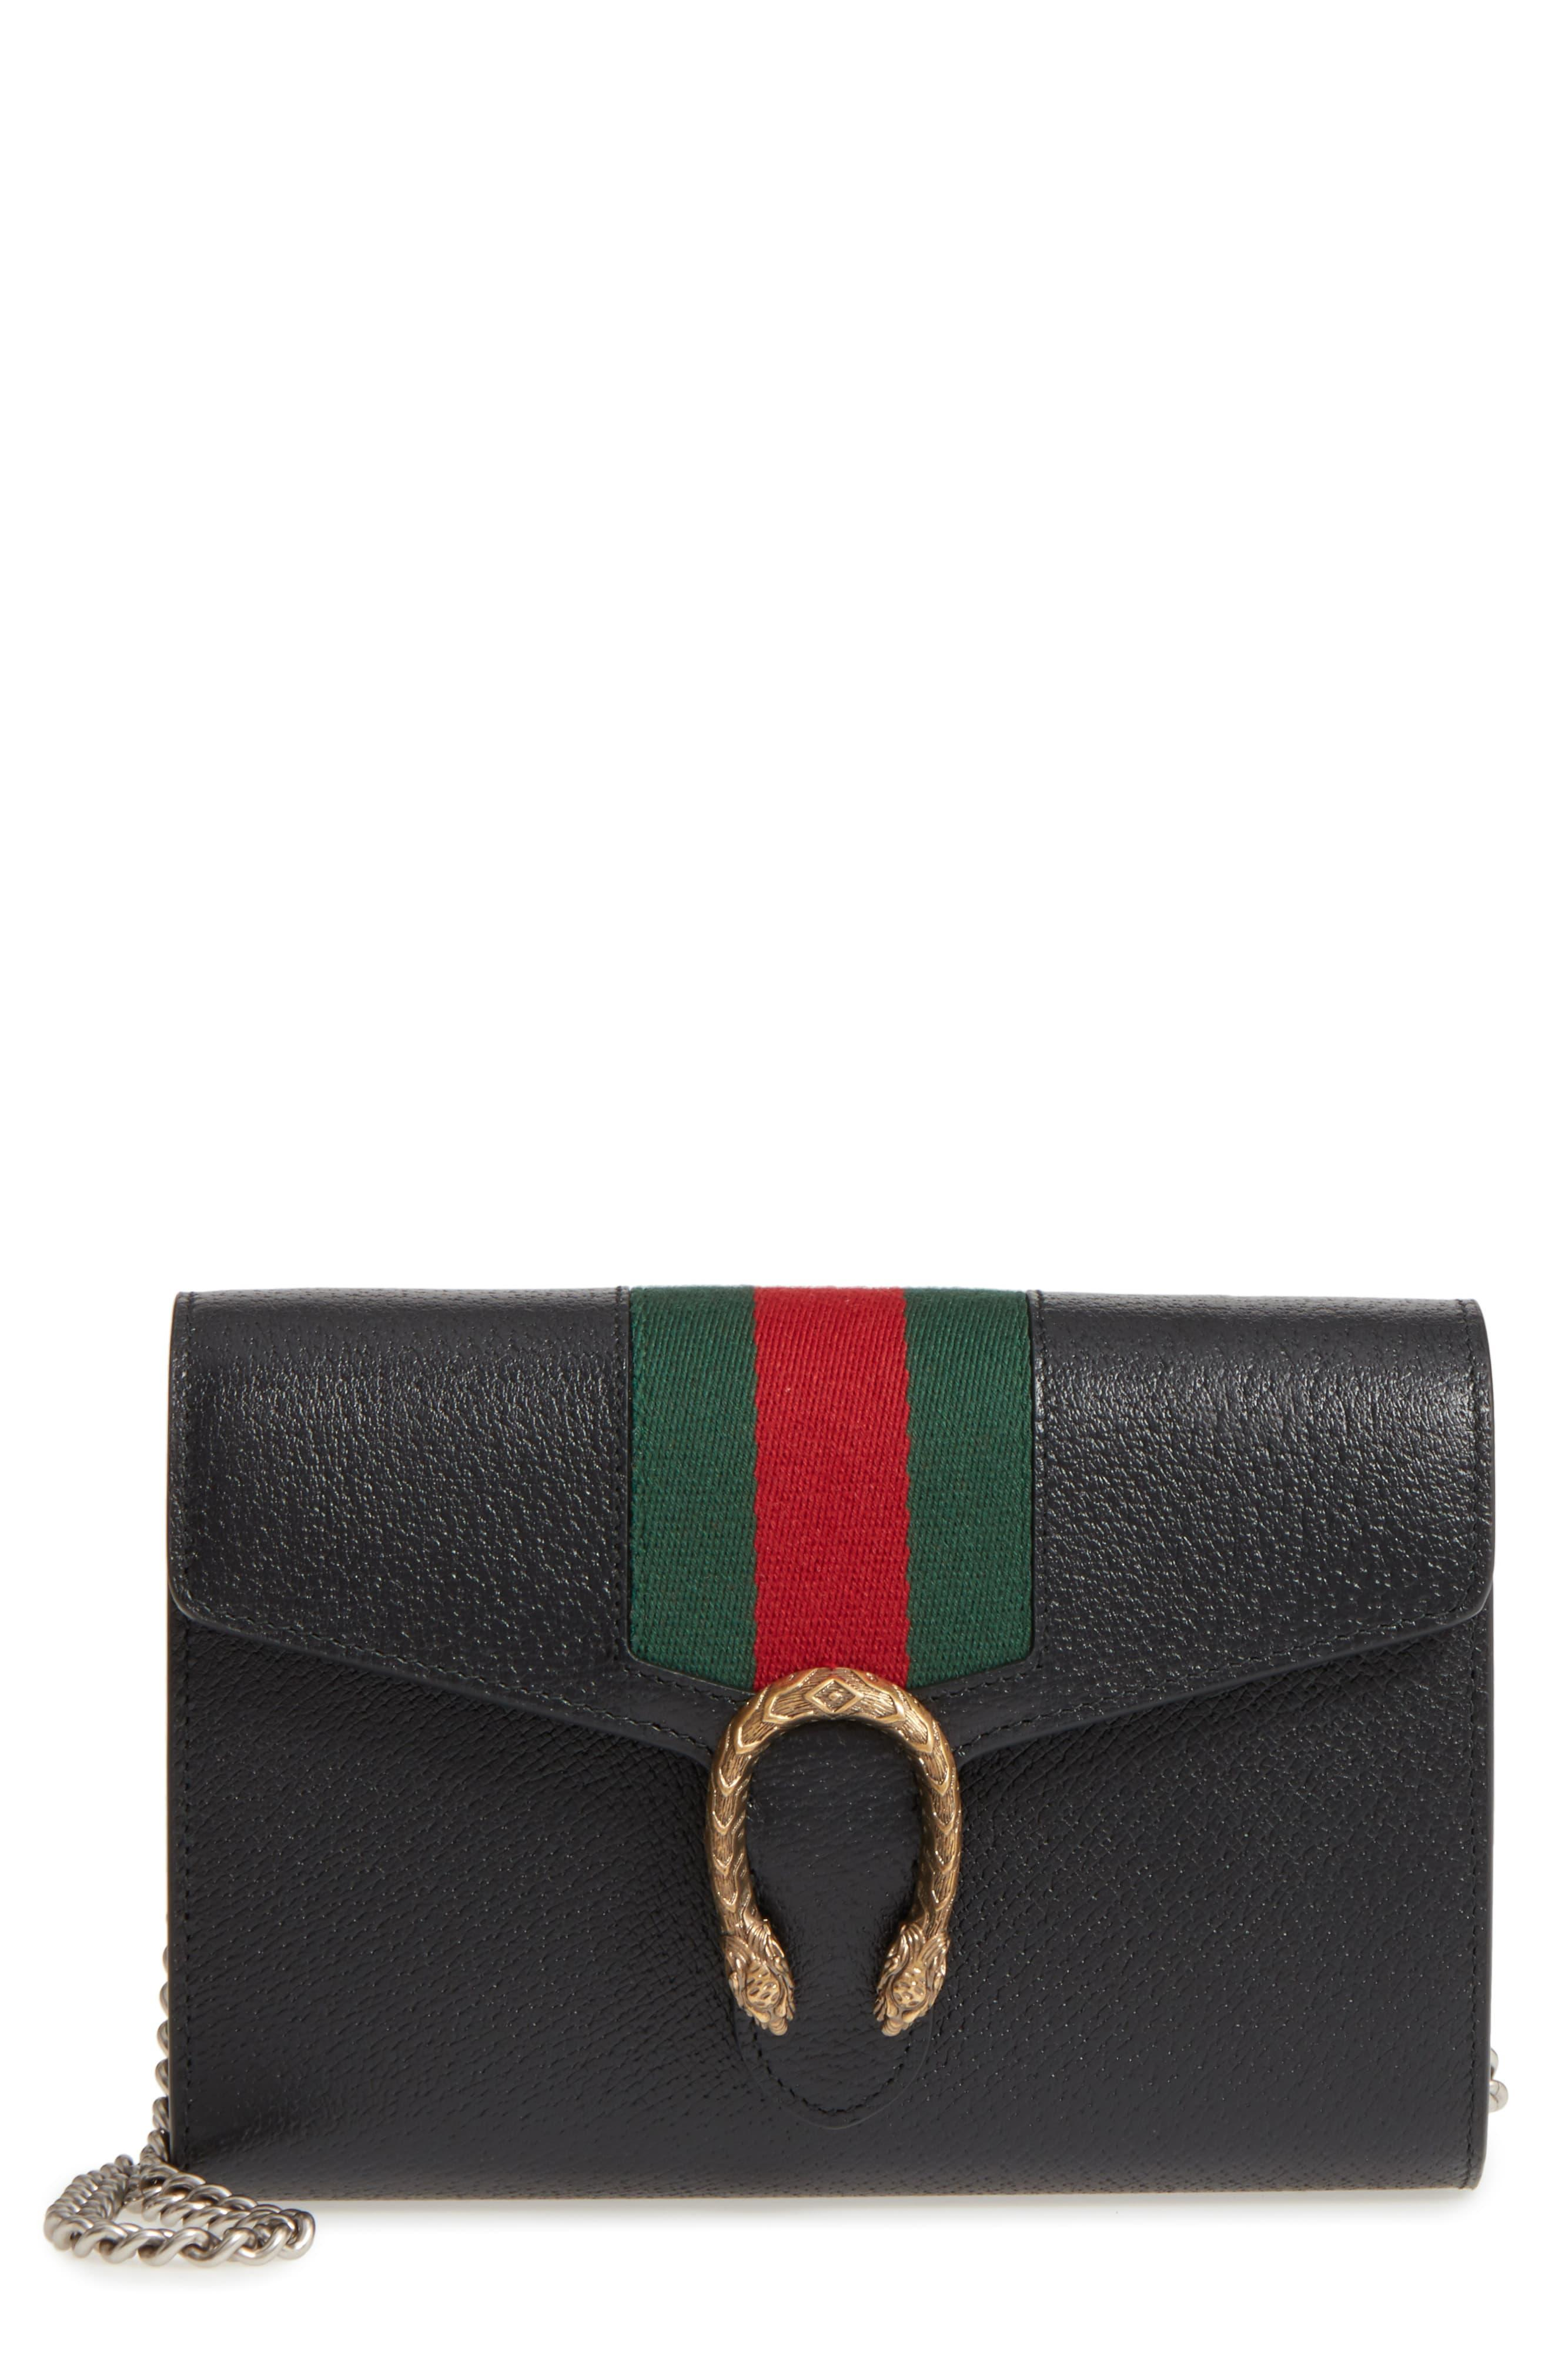 e0961456adff Gucci Dionysus Web Stripe Leather Wallet On A Chain - in Black - Lyst